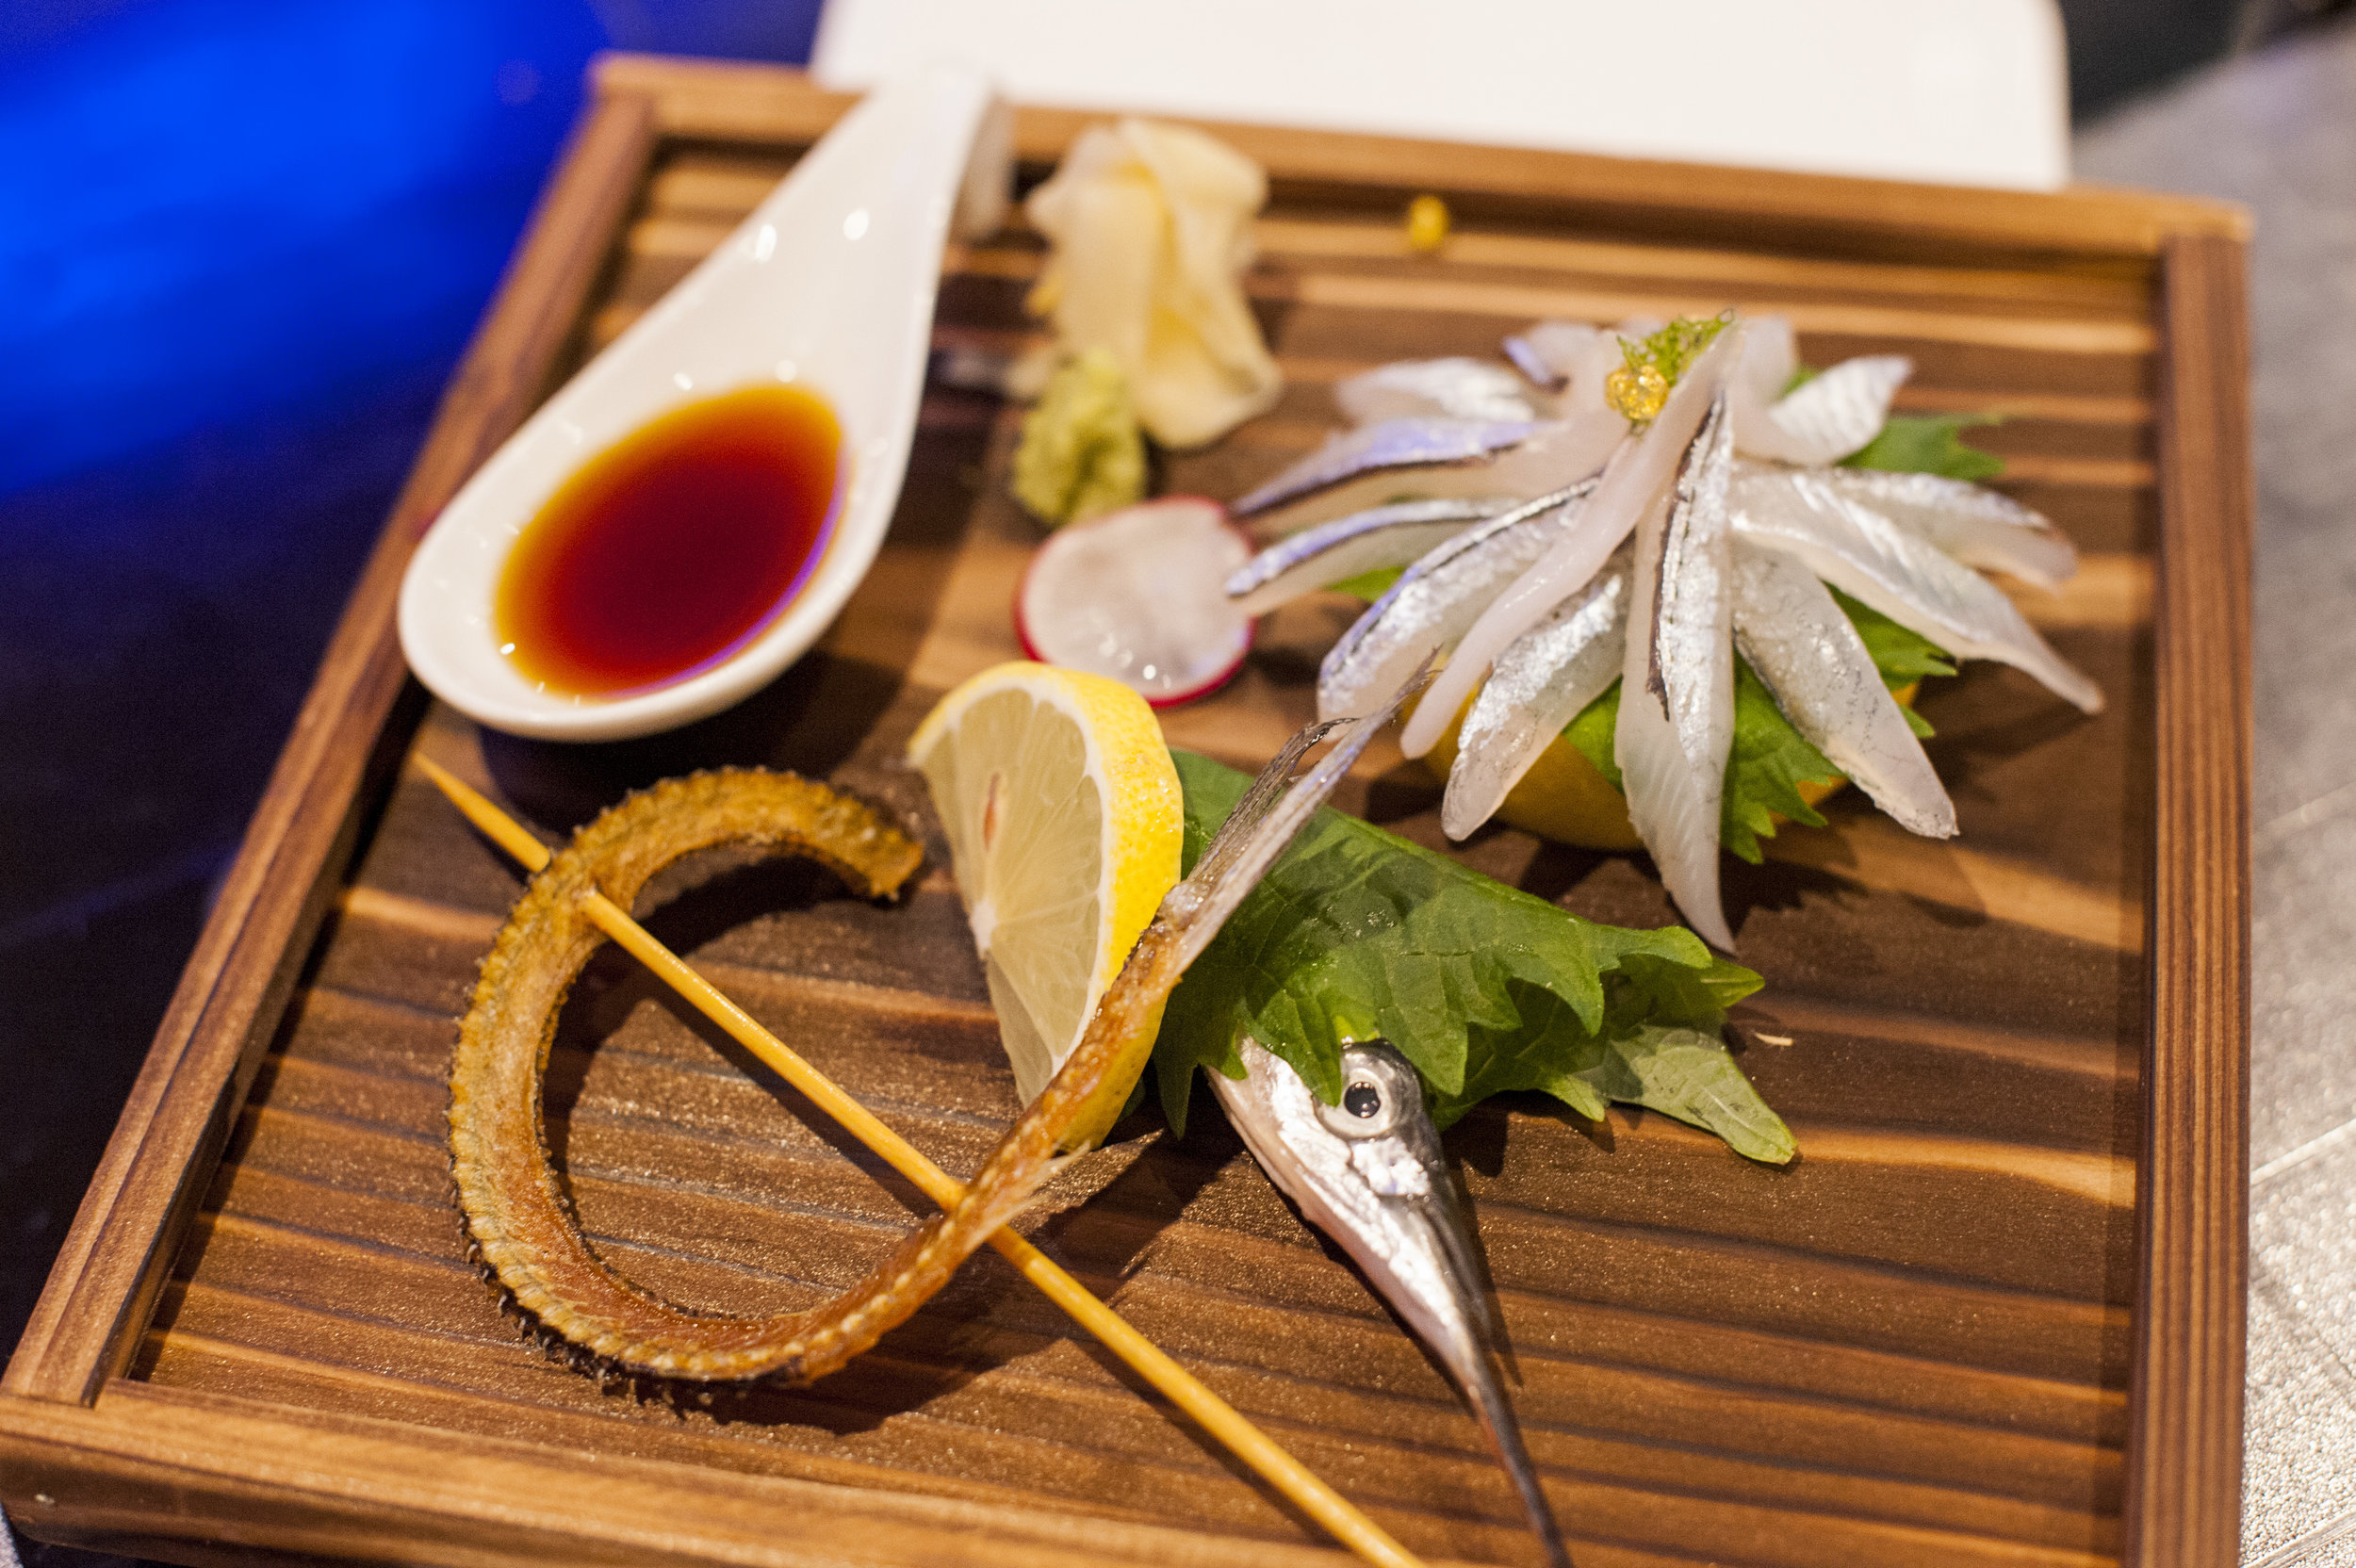 110 Japan's Sayori Sashimi is a marvel to behold and balances tender and savory Sayori slices, with the fish's spine deep fried and served as a crunchy complement.